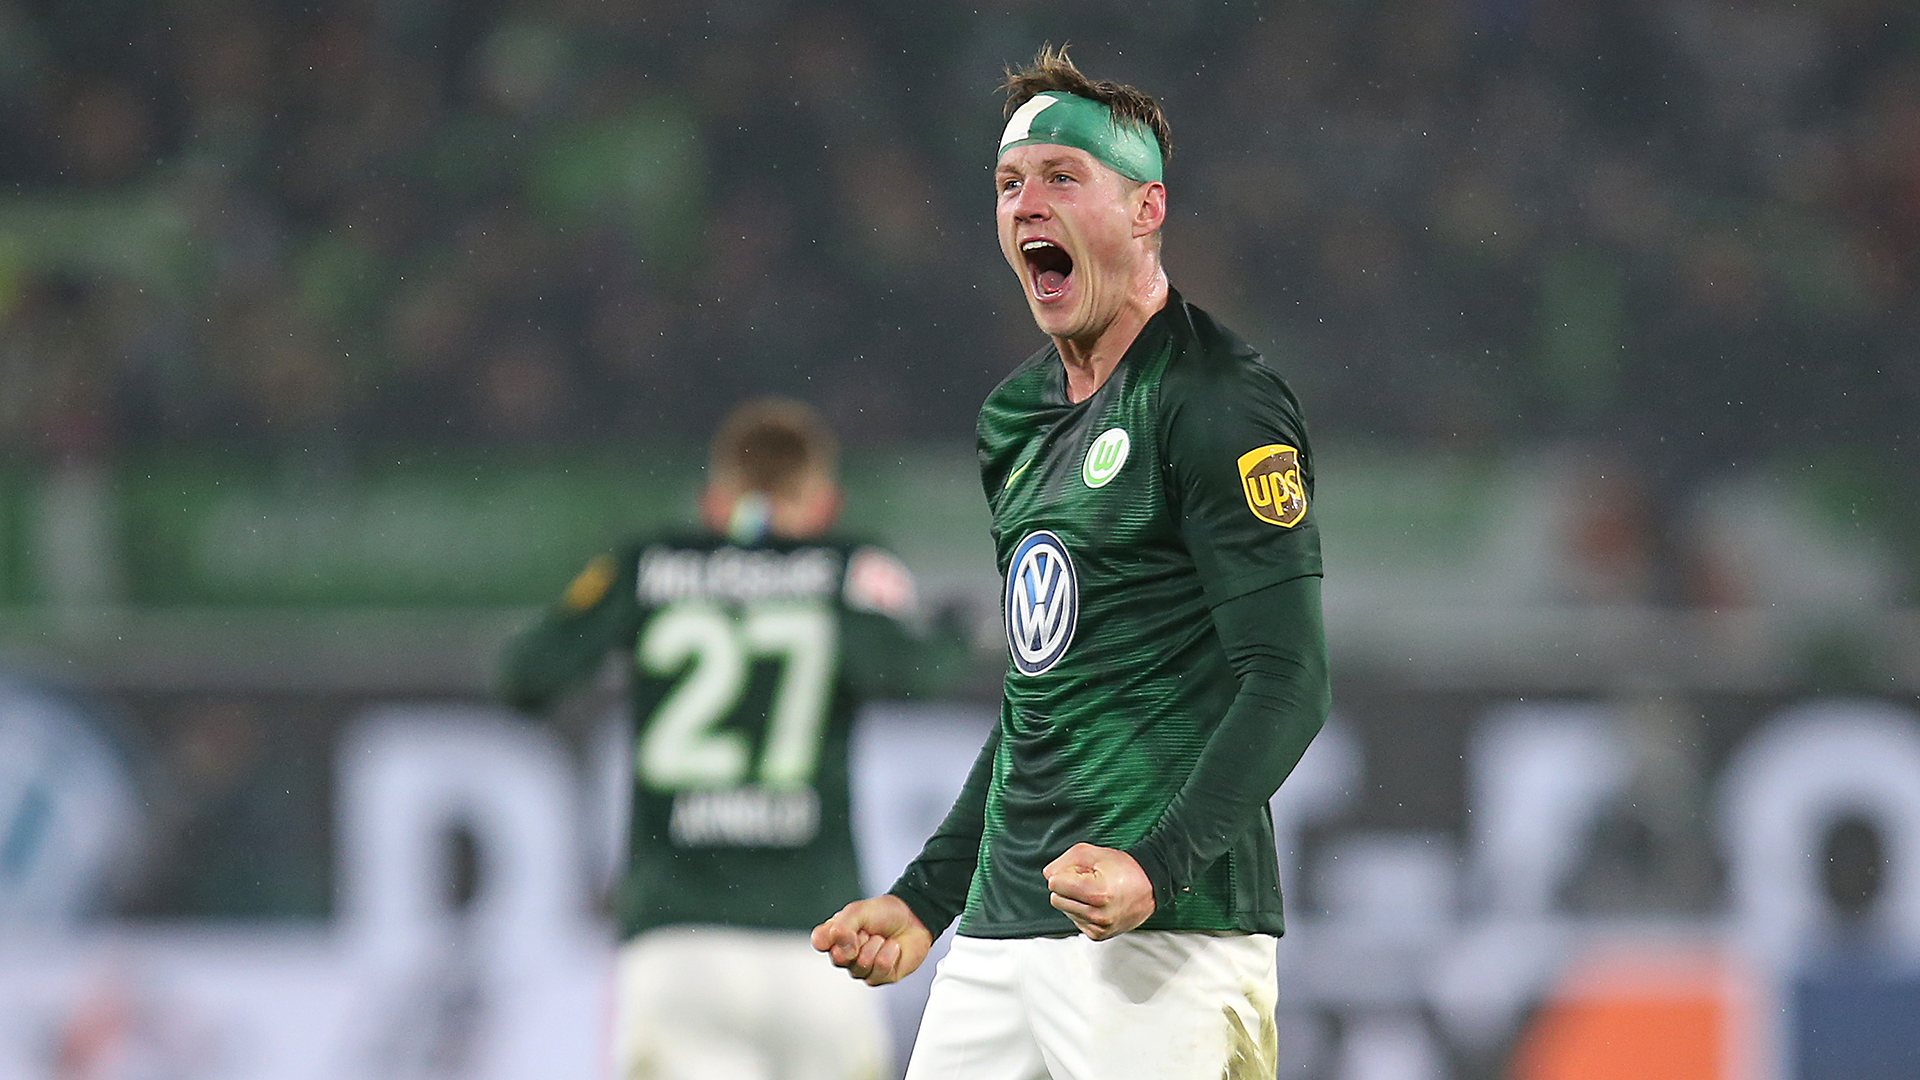 'There is more to come from me' - Weghorst touts possible transfer amid Arsenal speculation